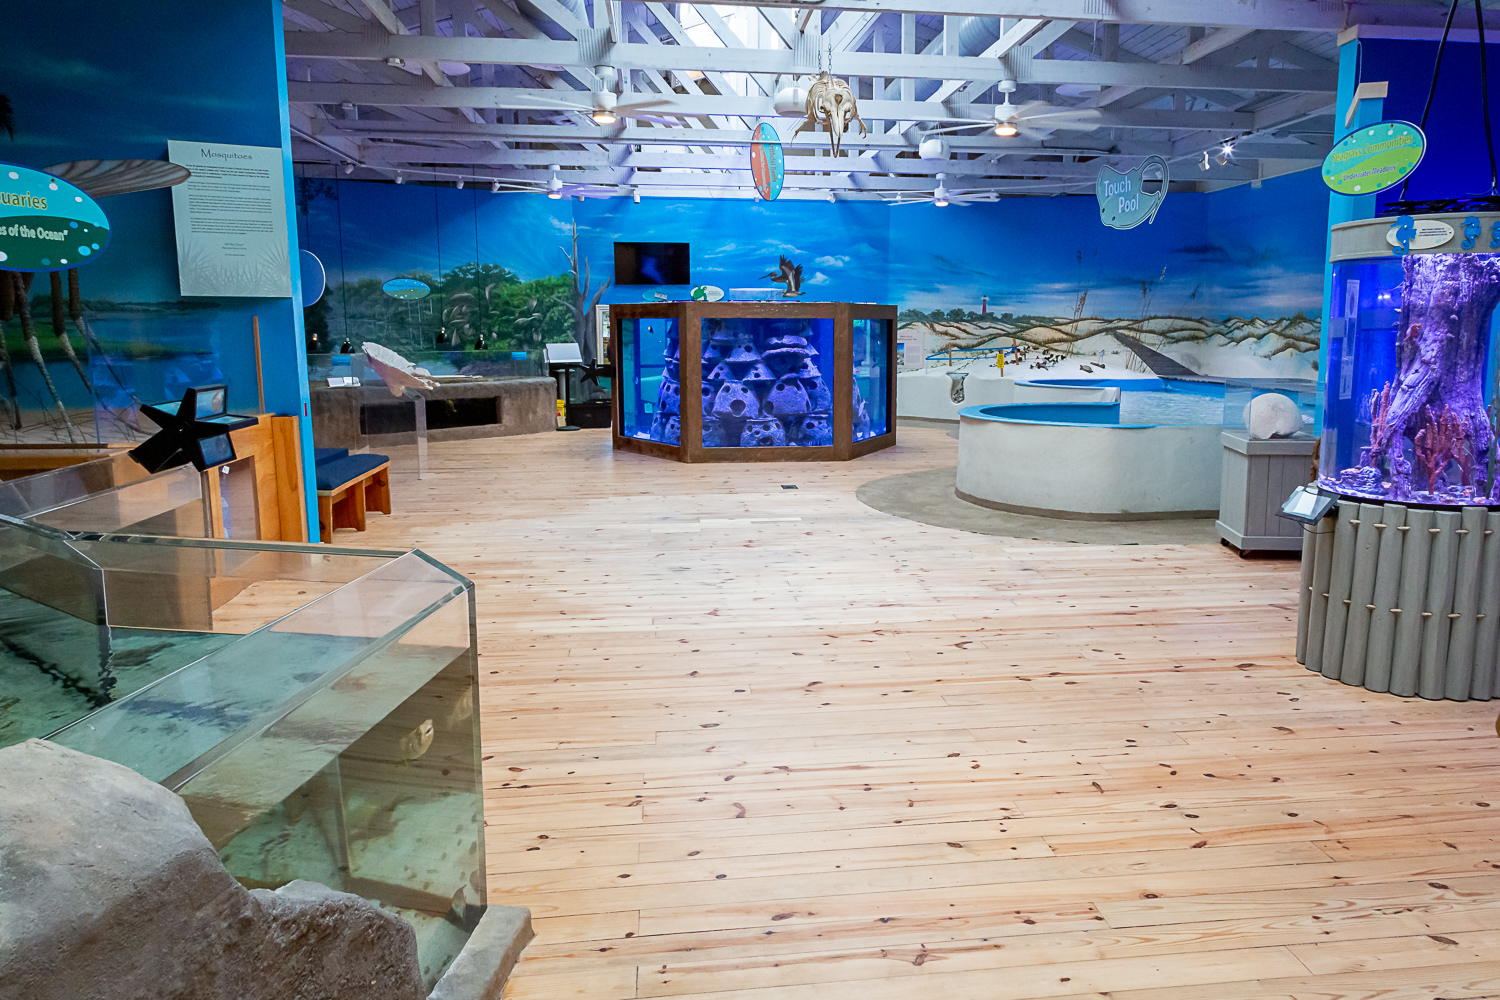 marine science center exhibits including artificial reef and touch pool